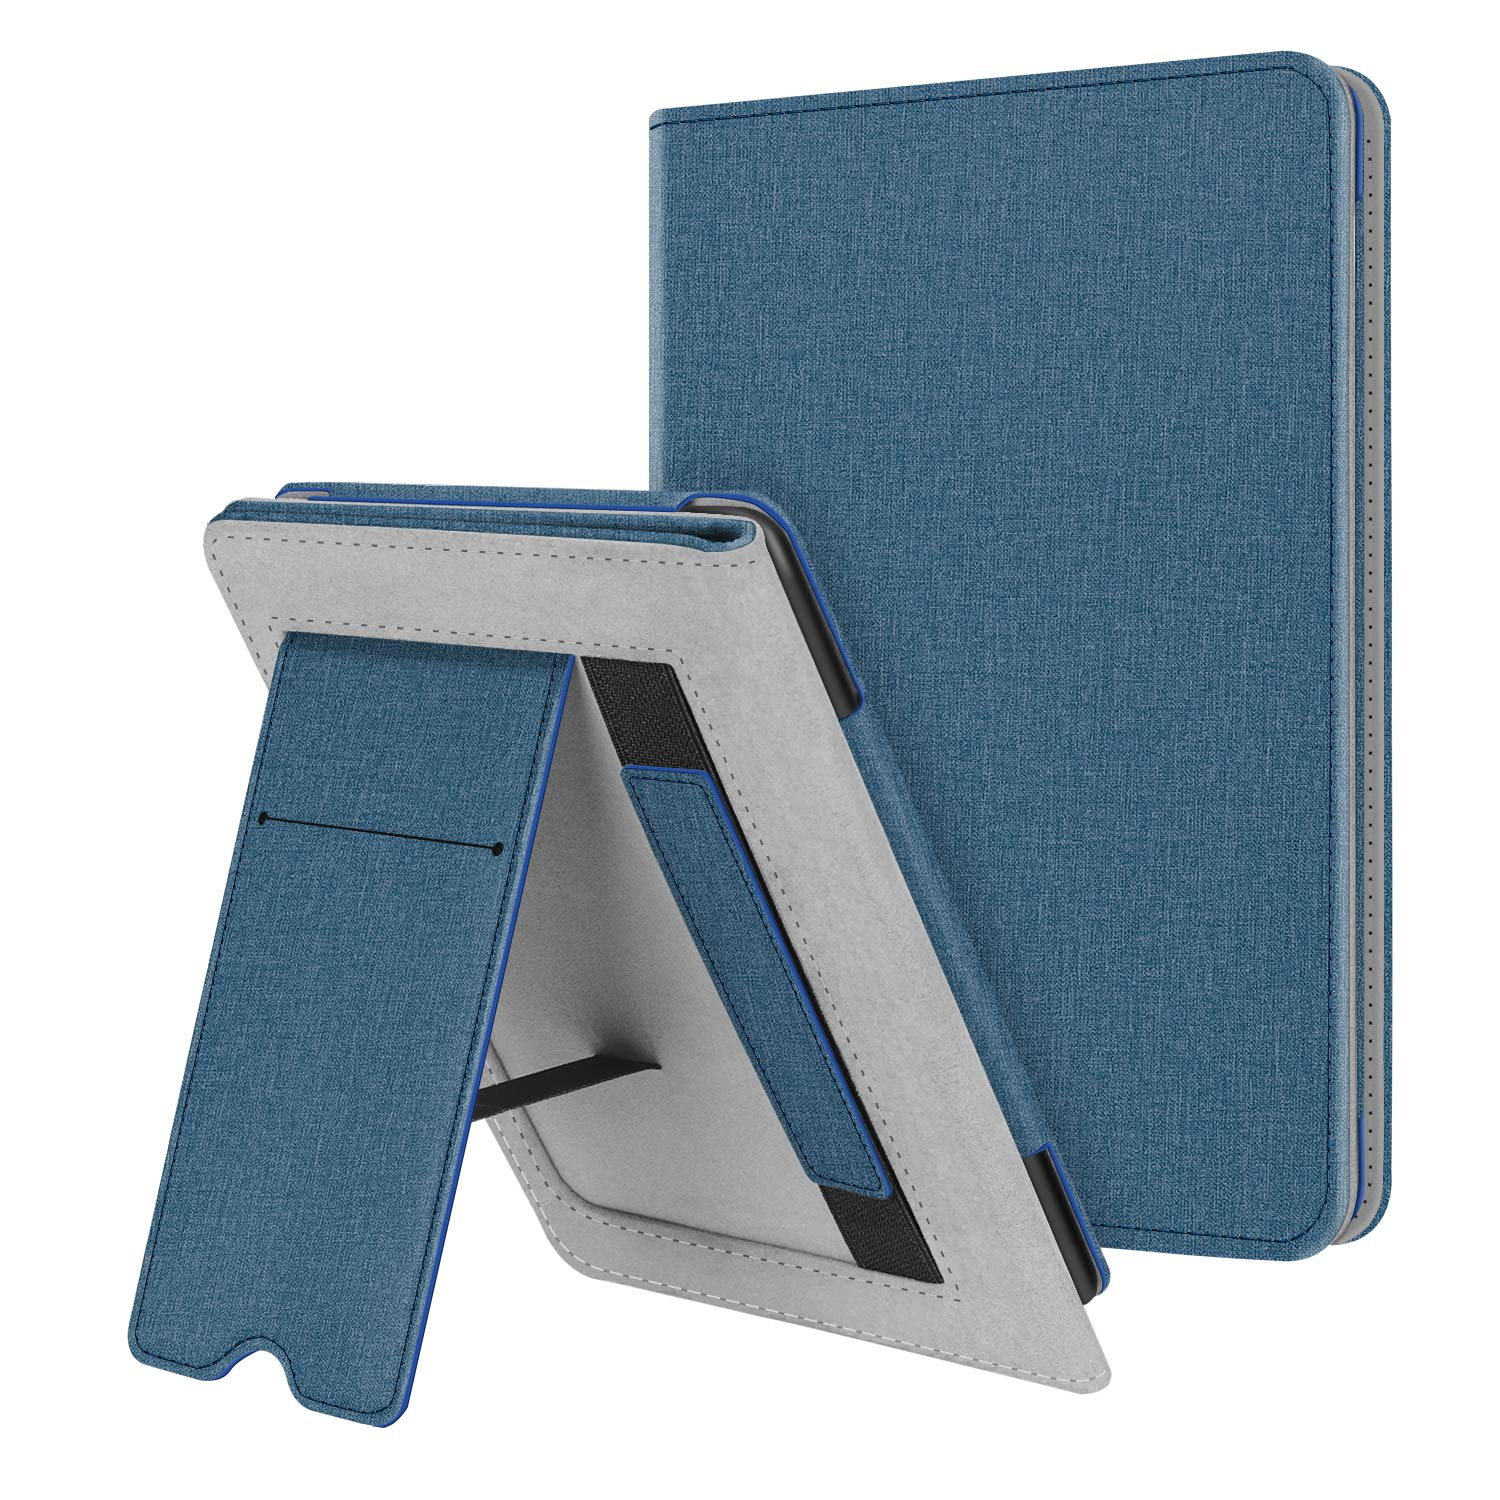 Fintie Stand Case for Kindle Paperwhite (Fits All-New 10th Generation 2018 / All Paperwhite Generations) - Premium PU Leather Protective Sleeve Cover with Card Slot and Hand Strap, Twilight Blue